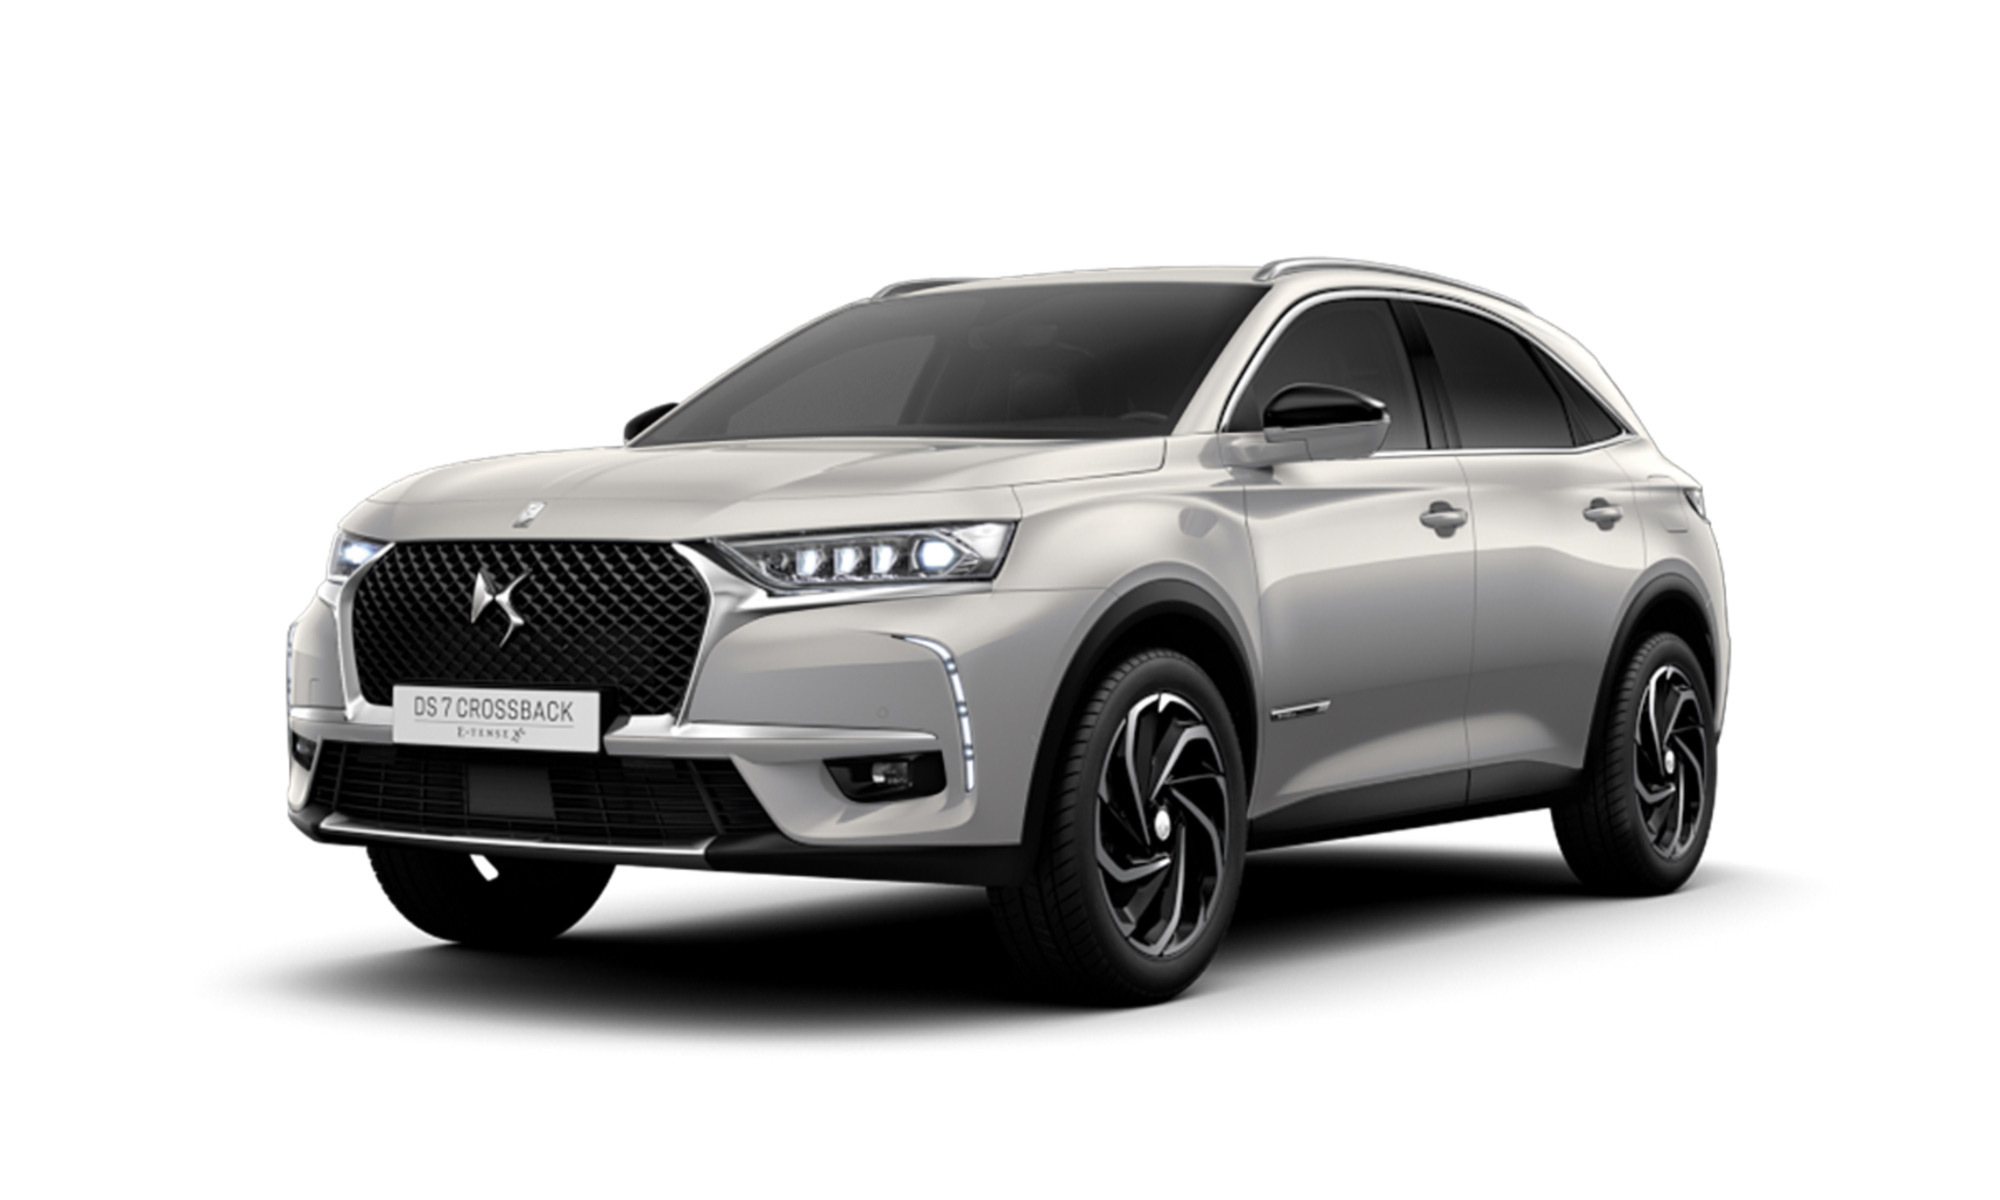 DS 7 CROSSBACK E-TENSE (2020)